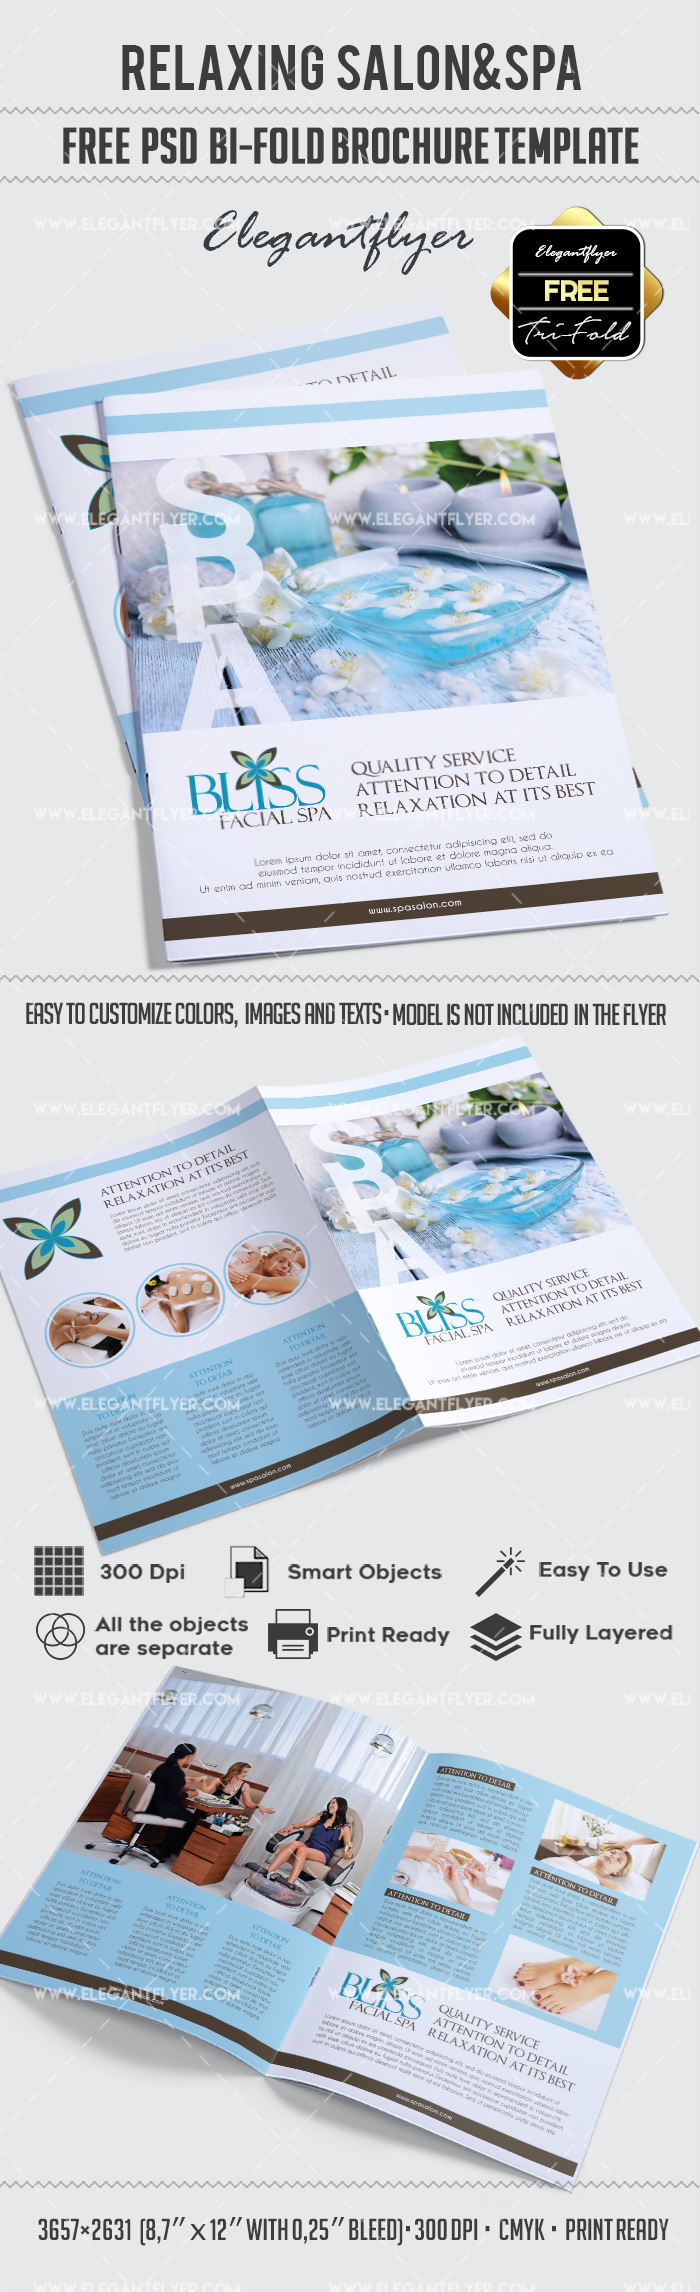 bi fold brochure template - free relaxing salon for bi fold psd brochure by elegantflyer